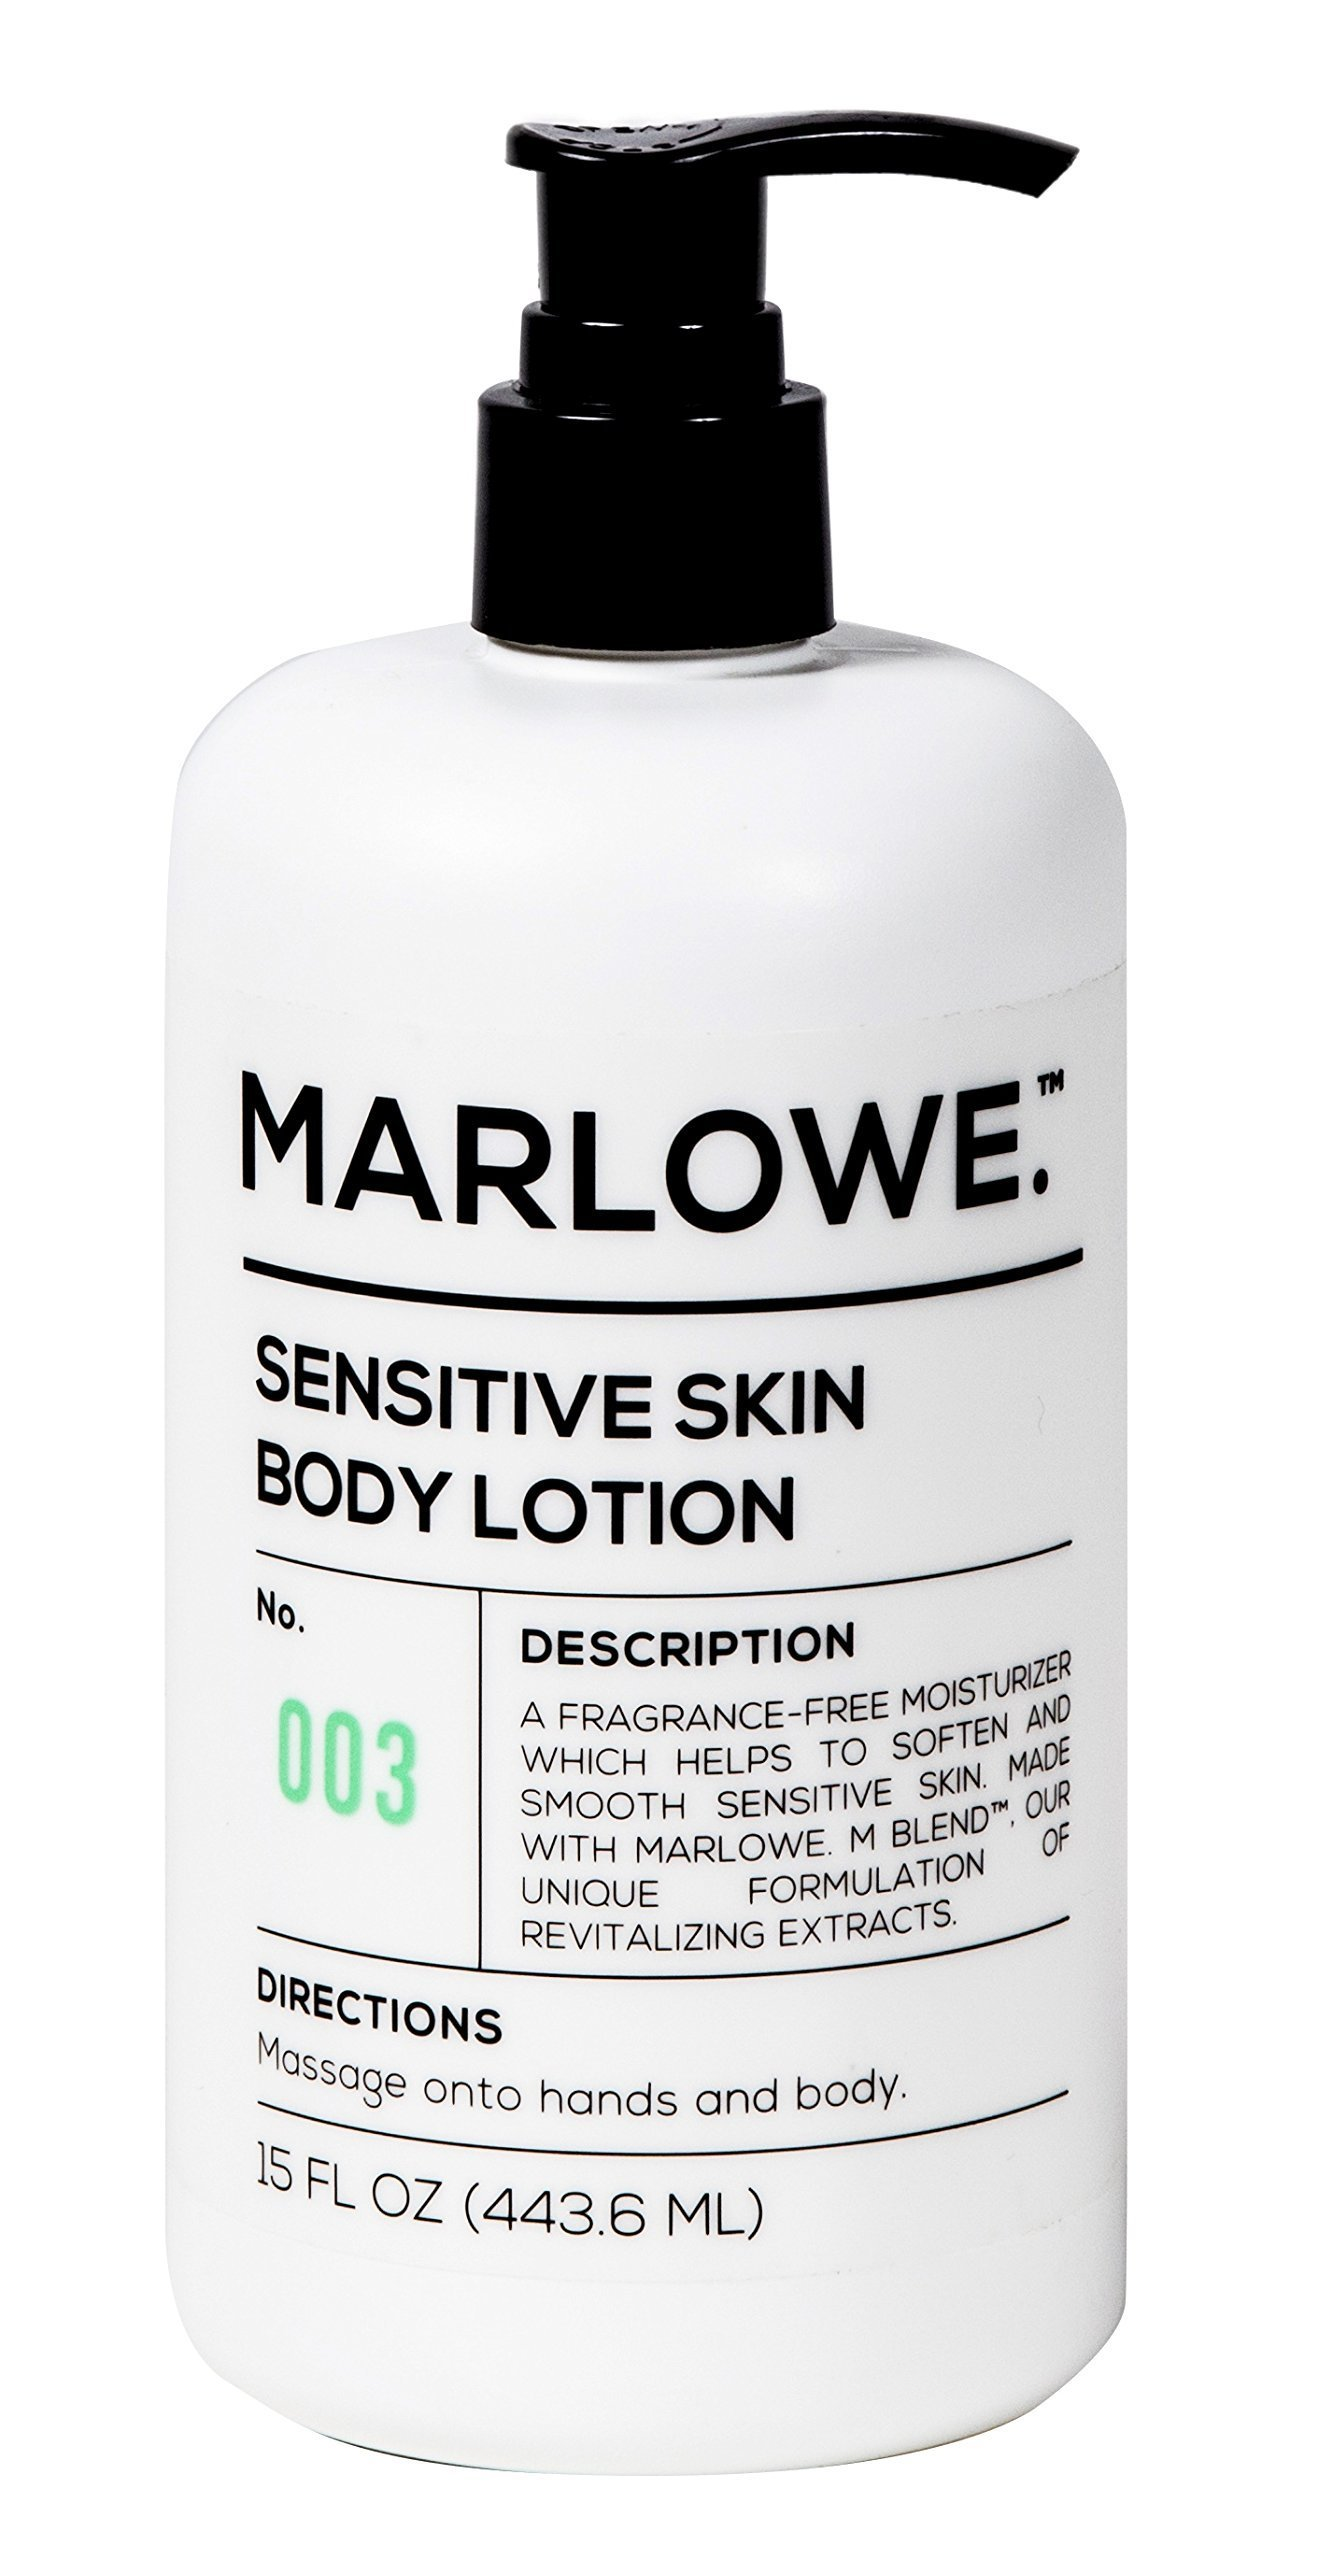 MARLOWE. No. 003 Sensitive Skin Body Lotion 15 oz | Moisturizing, Fragrance-Free, Natural Lotion for Dry Skin